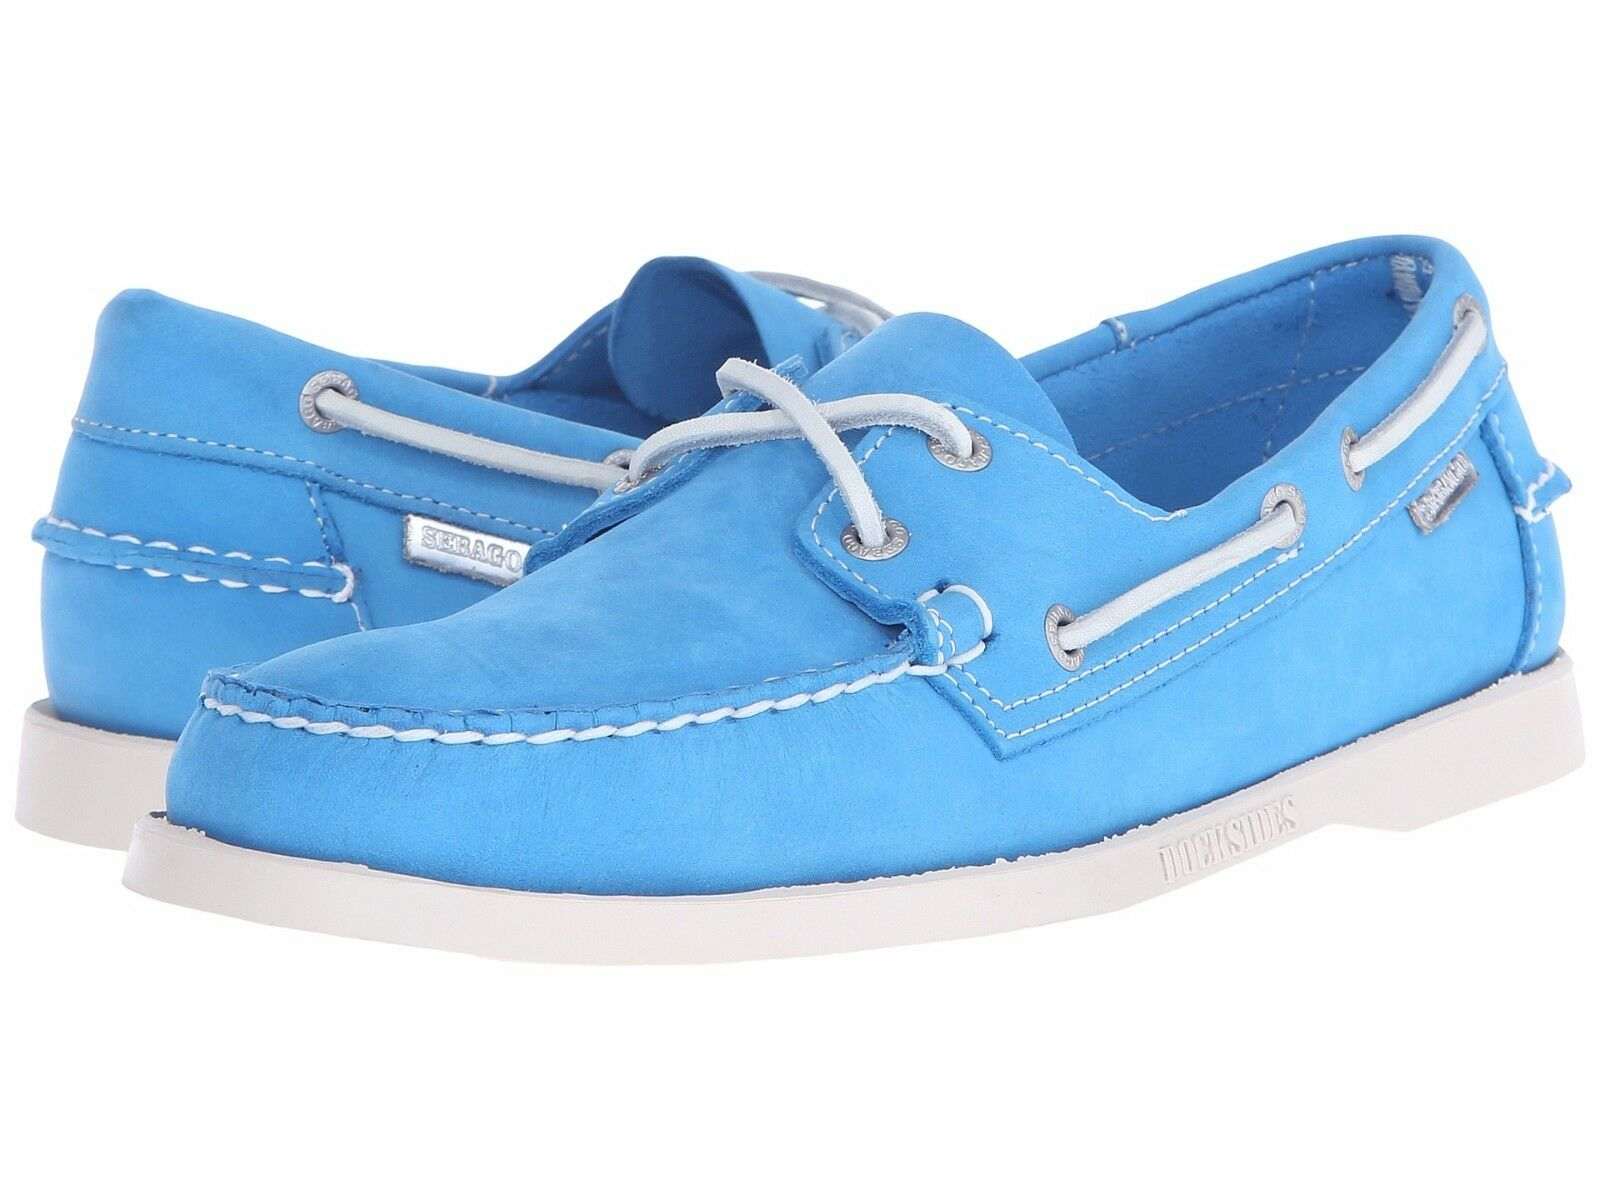 Sebago Spinnaker dockside 70th anniversary, limited edition 8.5 M aqua bluee